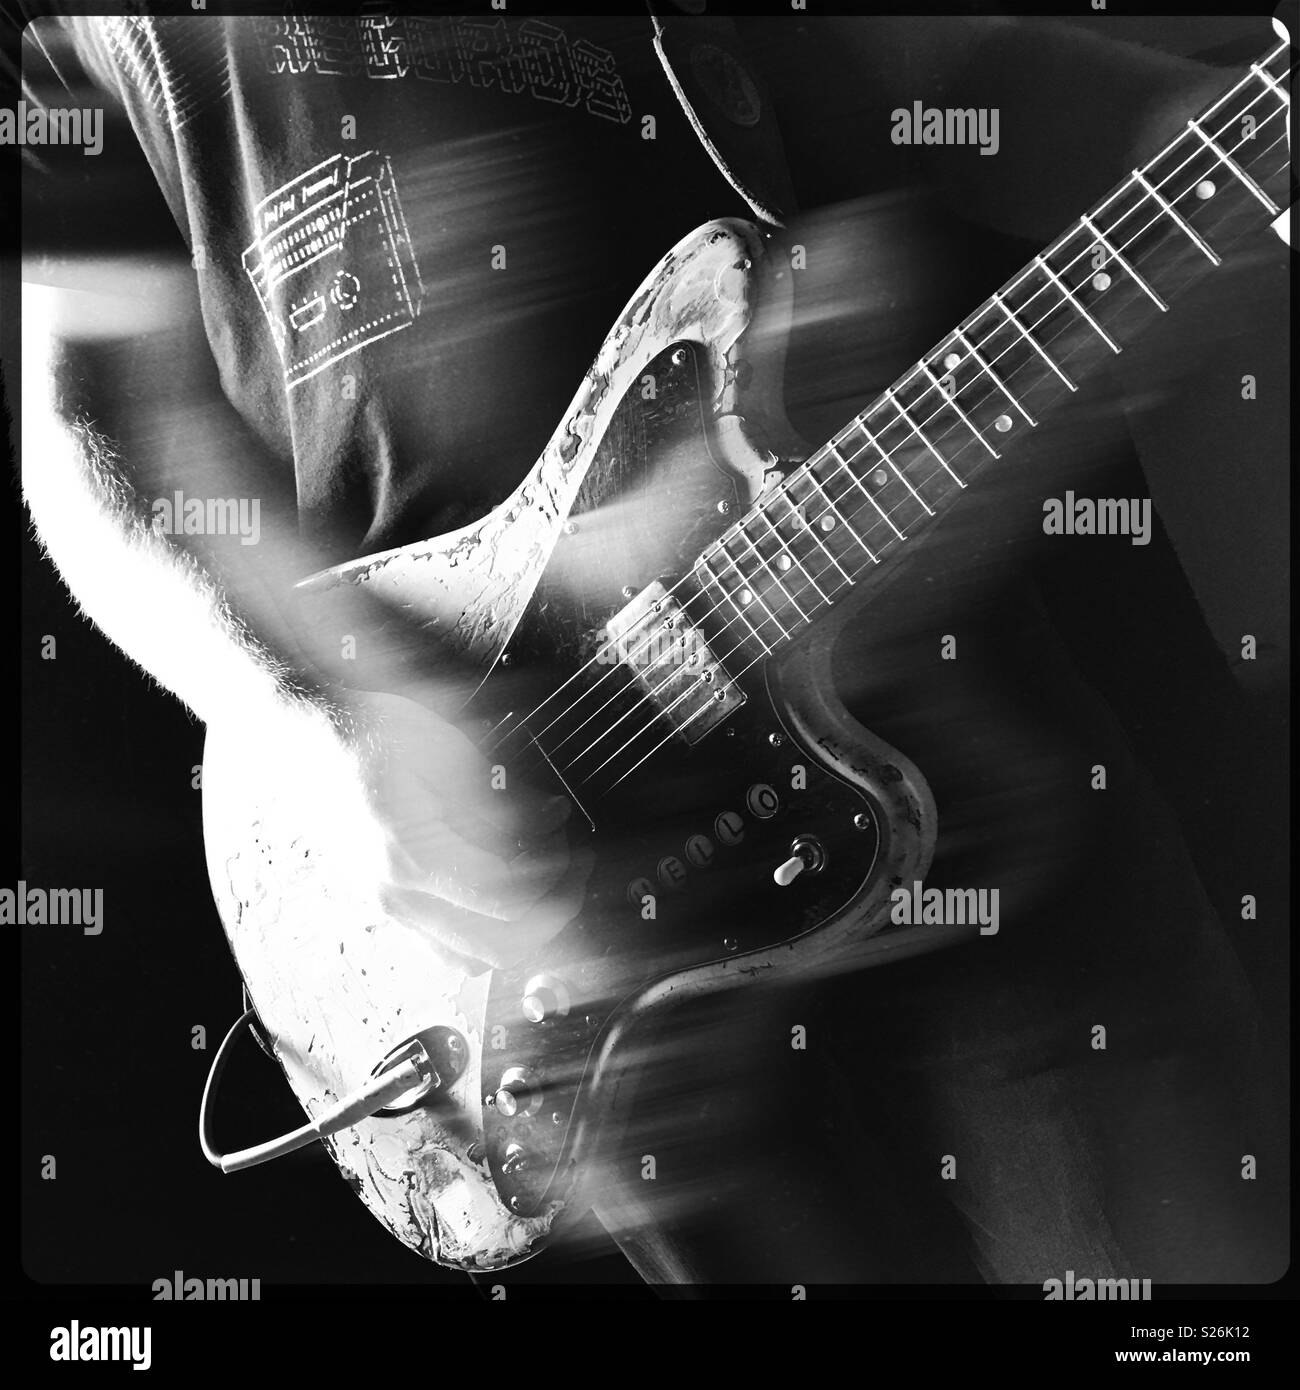 Close view of a rocking guitarist in action. - Stock Image